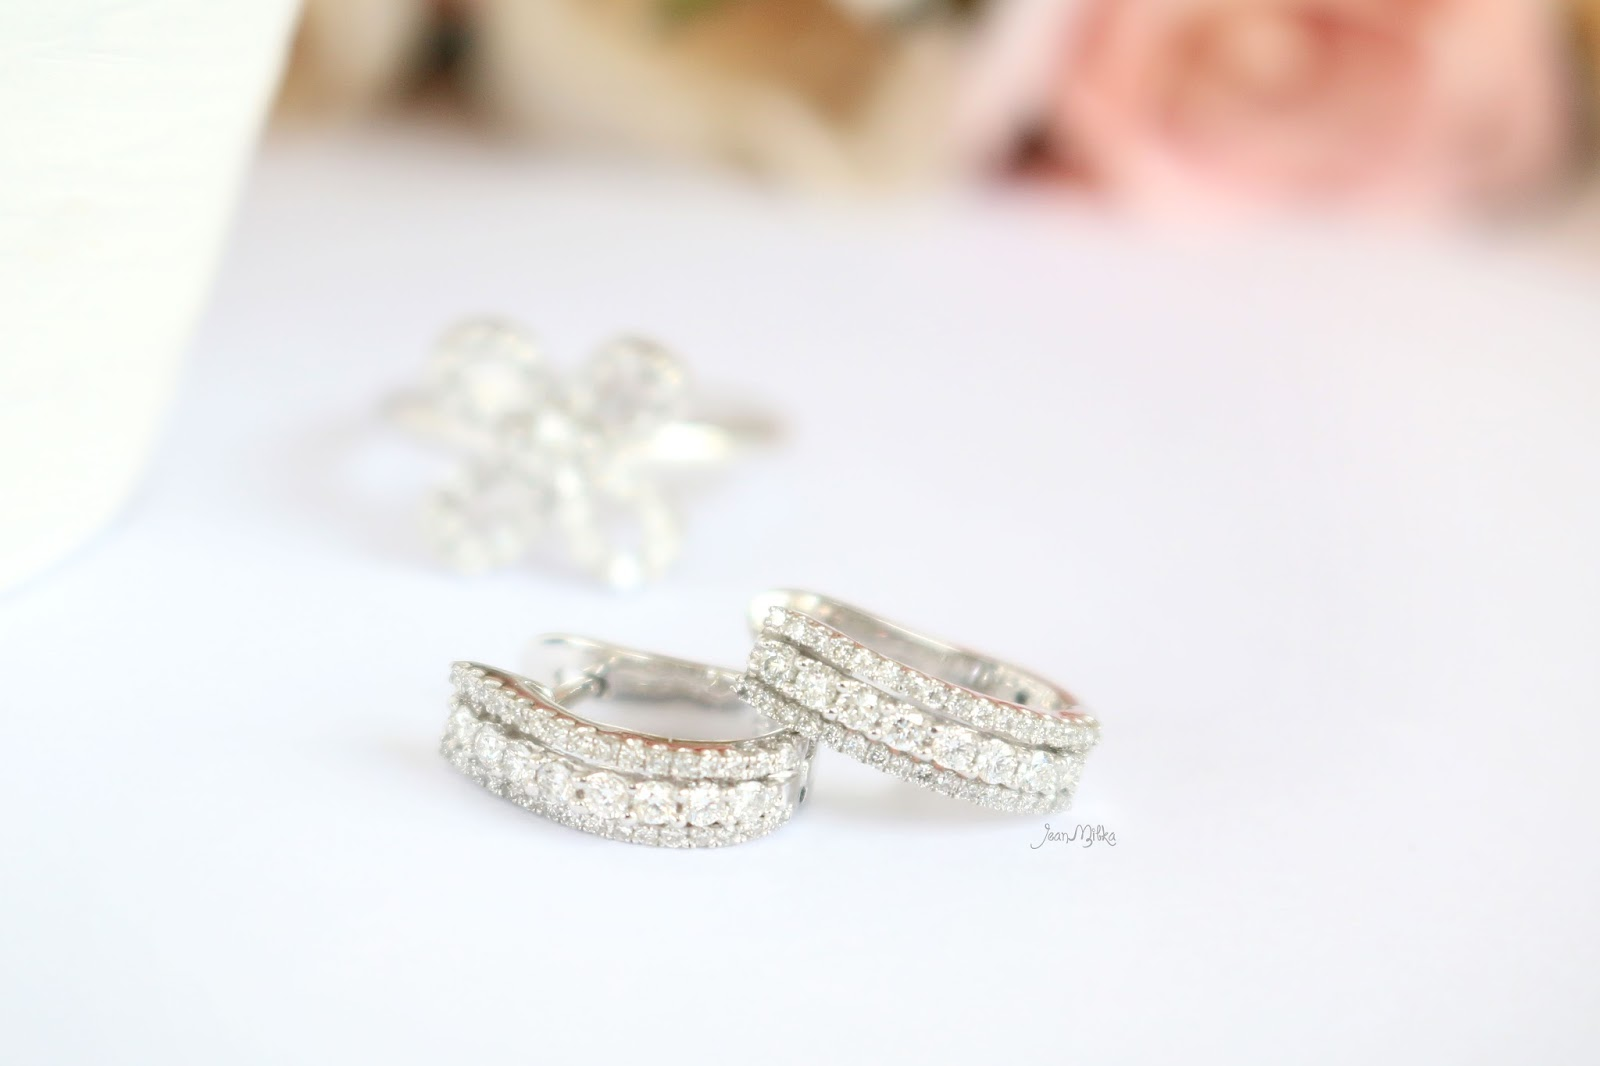 orori, orori jewelry, diamond, reivew, online shop, indonesia, jakarta, neclage, ring, earrings